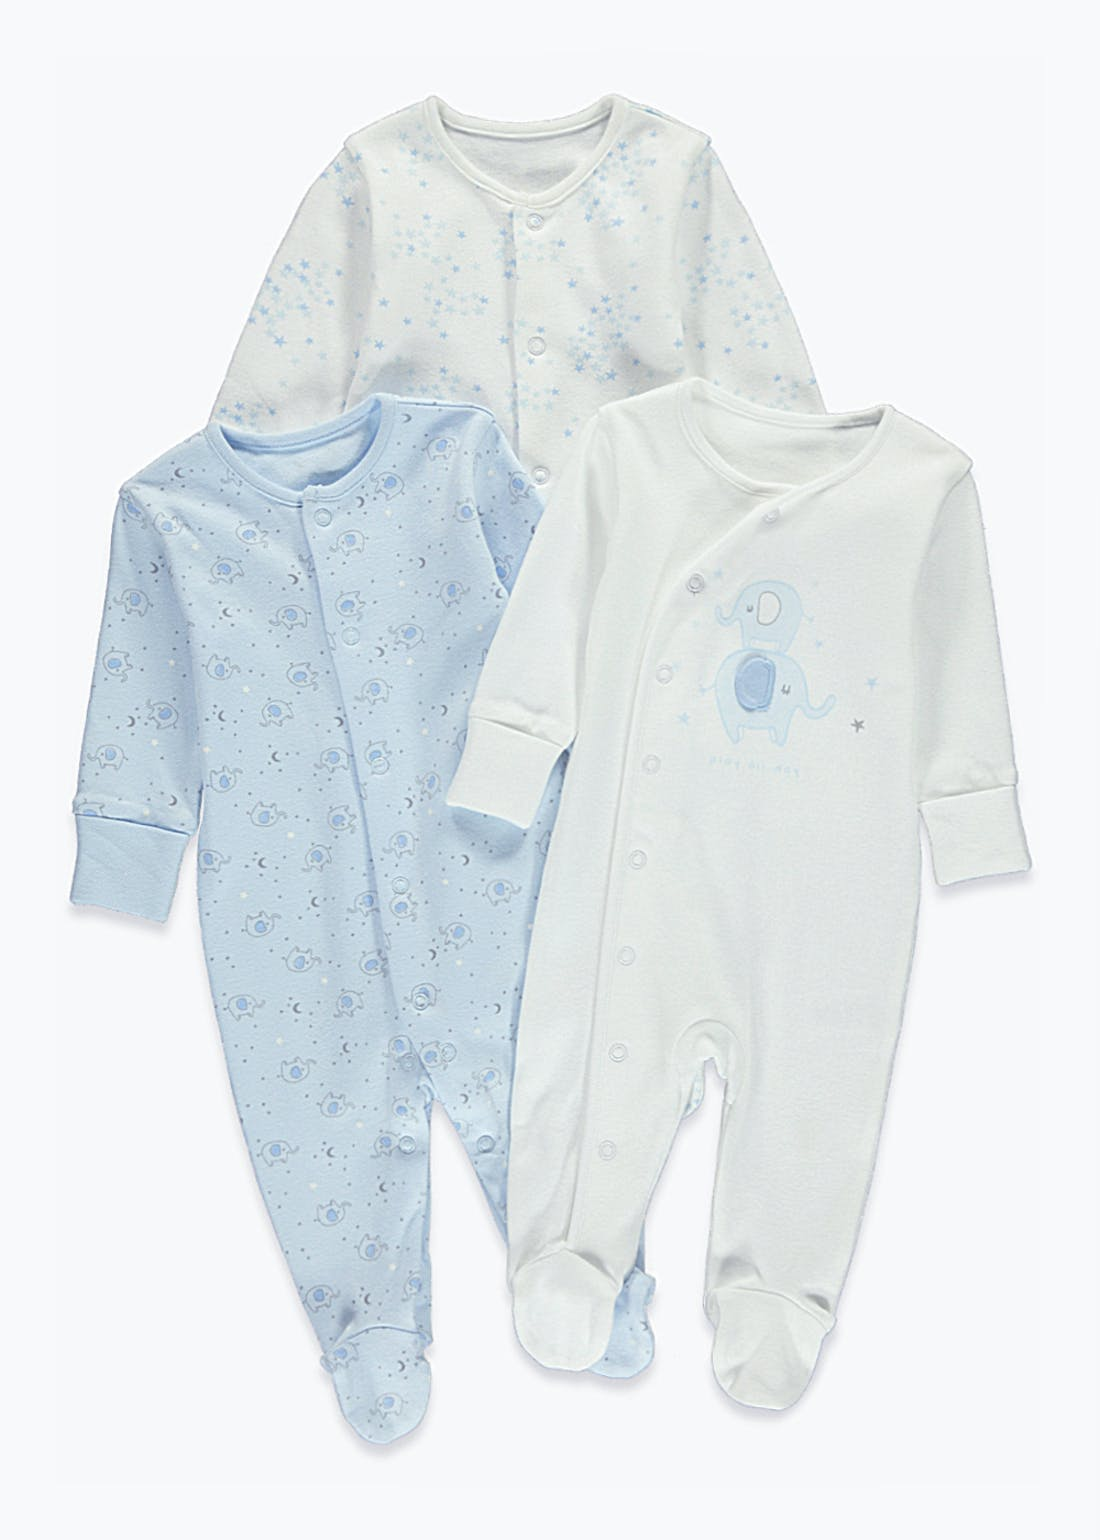 Unisex 3 Pack Elephant Print Baby Grows (Tiny Baby-18mths)